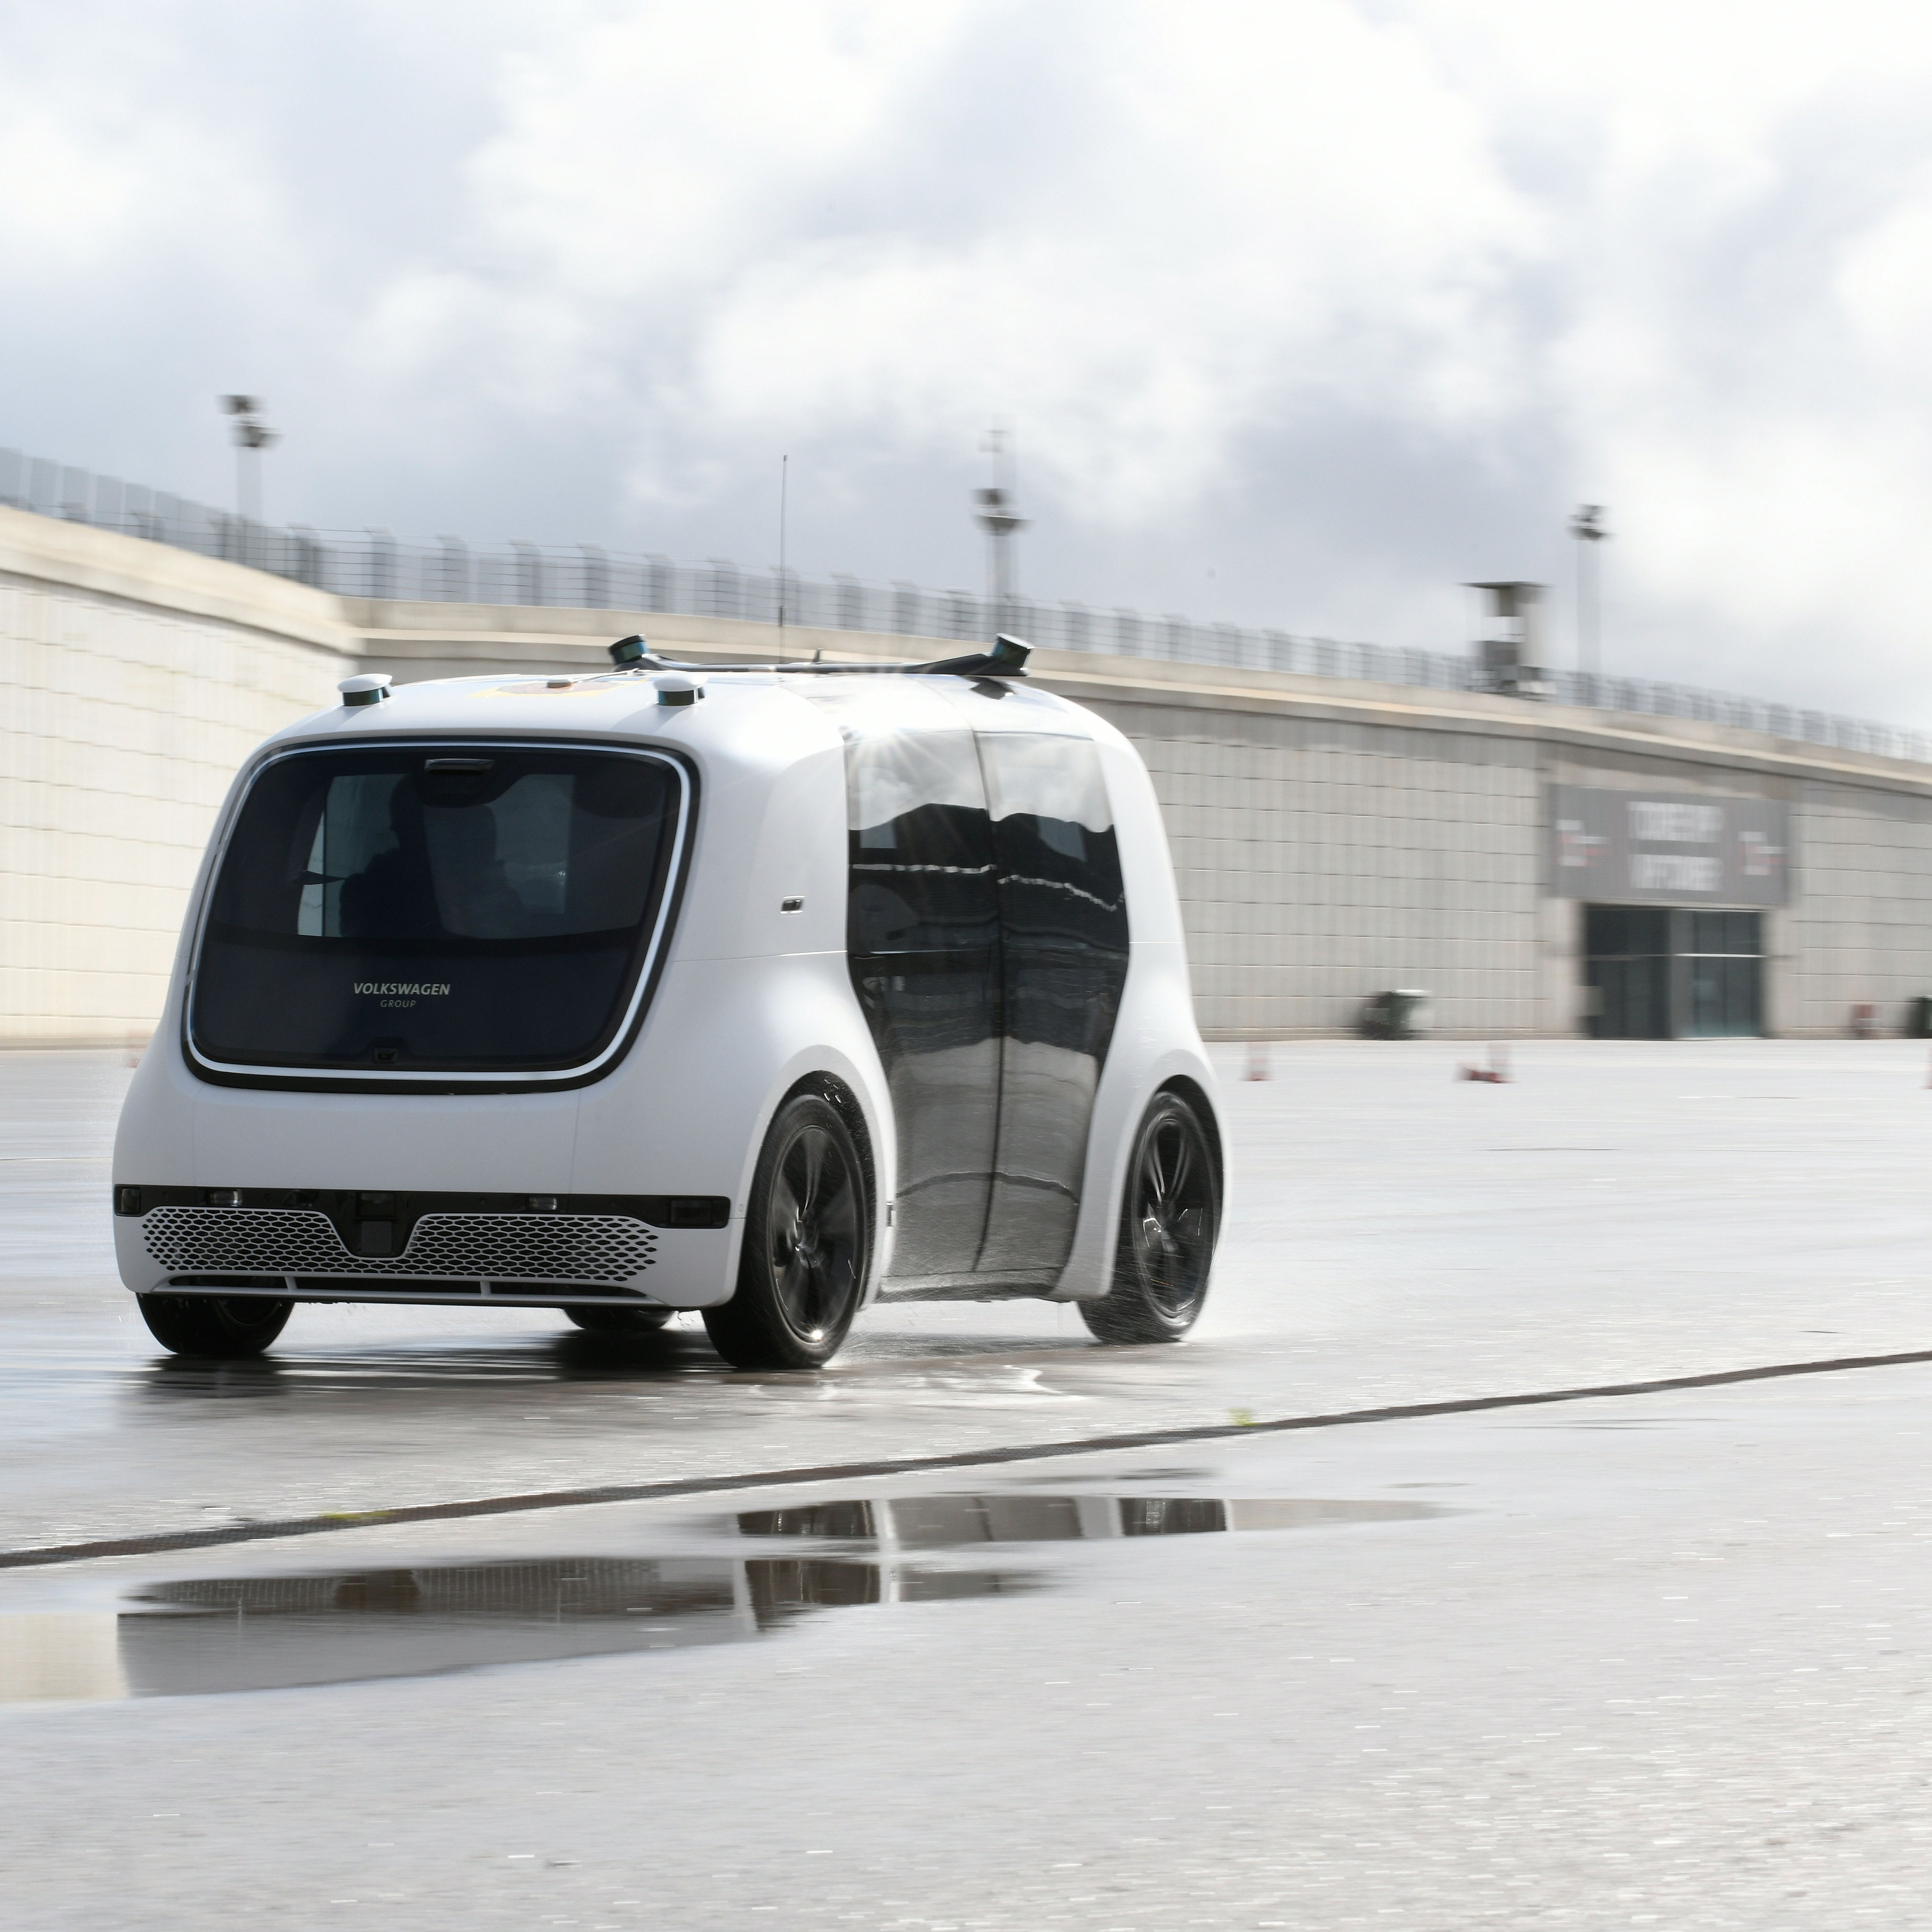 The Volkswagen Sedric autonomous vehicle driving